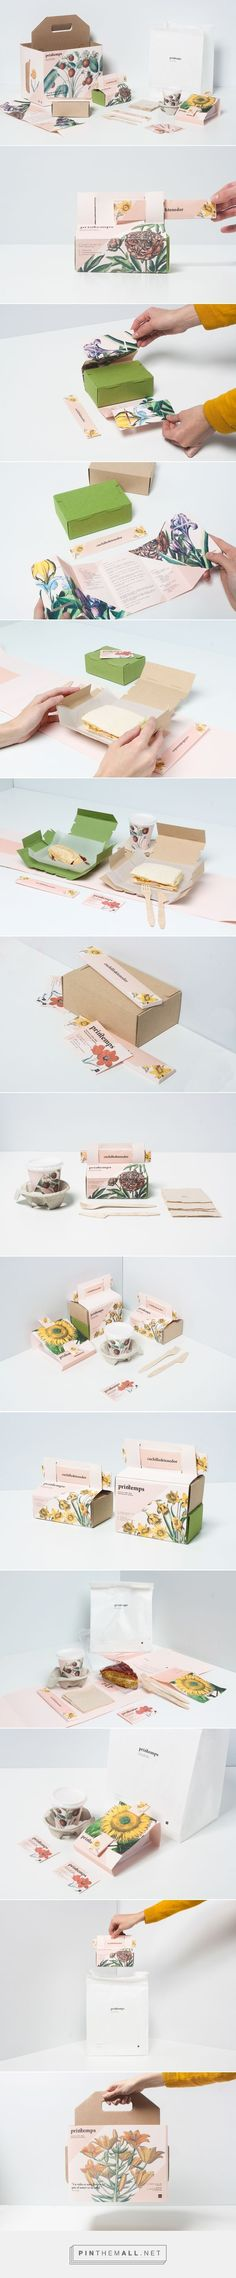 Printemps Take Away Food Packaging by Nat Tattaglia, Olaya Pintado, and Eli García Tea Packaging, Pretty Packaging, Brand Packaging, Product Packaging, Cheese Packaging, Flower Packaging, Packaging Boxes, Beverage Packaging, Packaging Inspiration